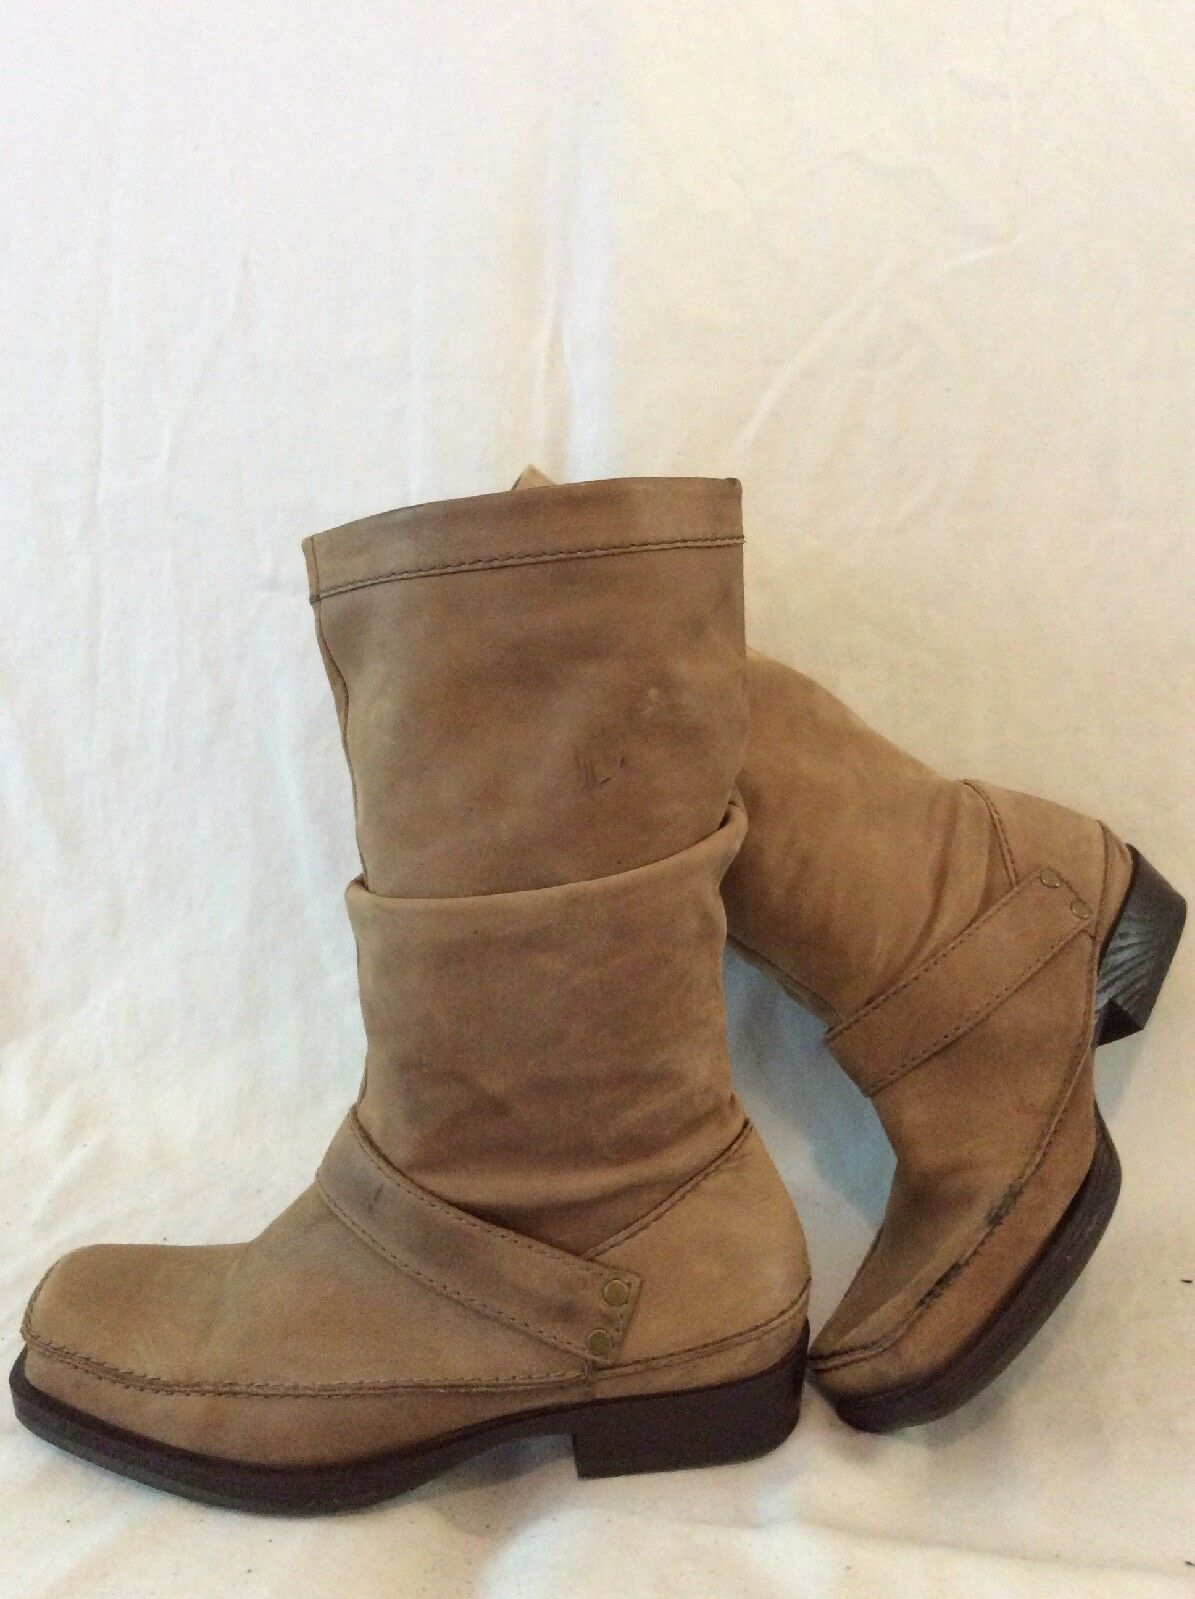 Clarks Brown Mid Calf Leather Boots Size 5